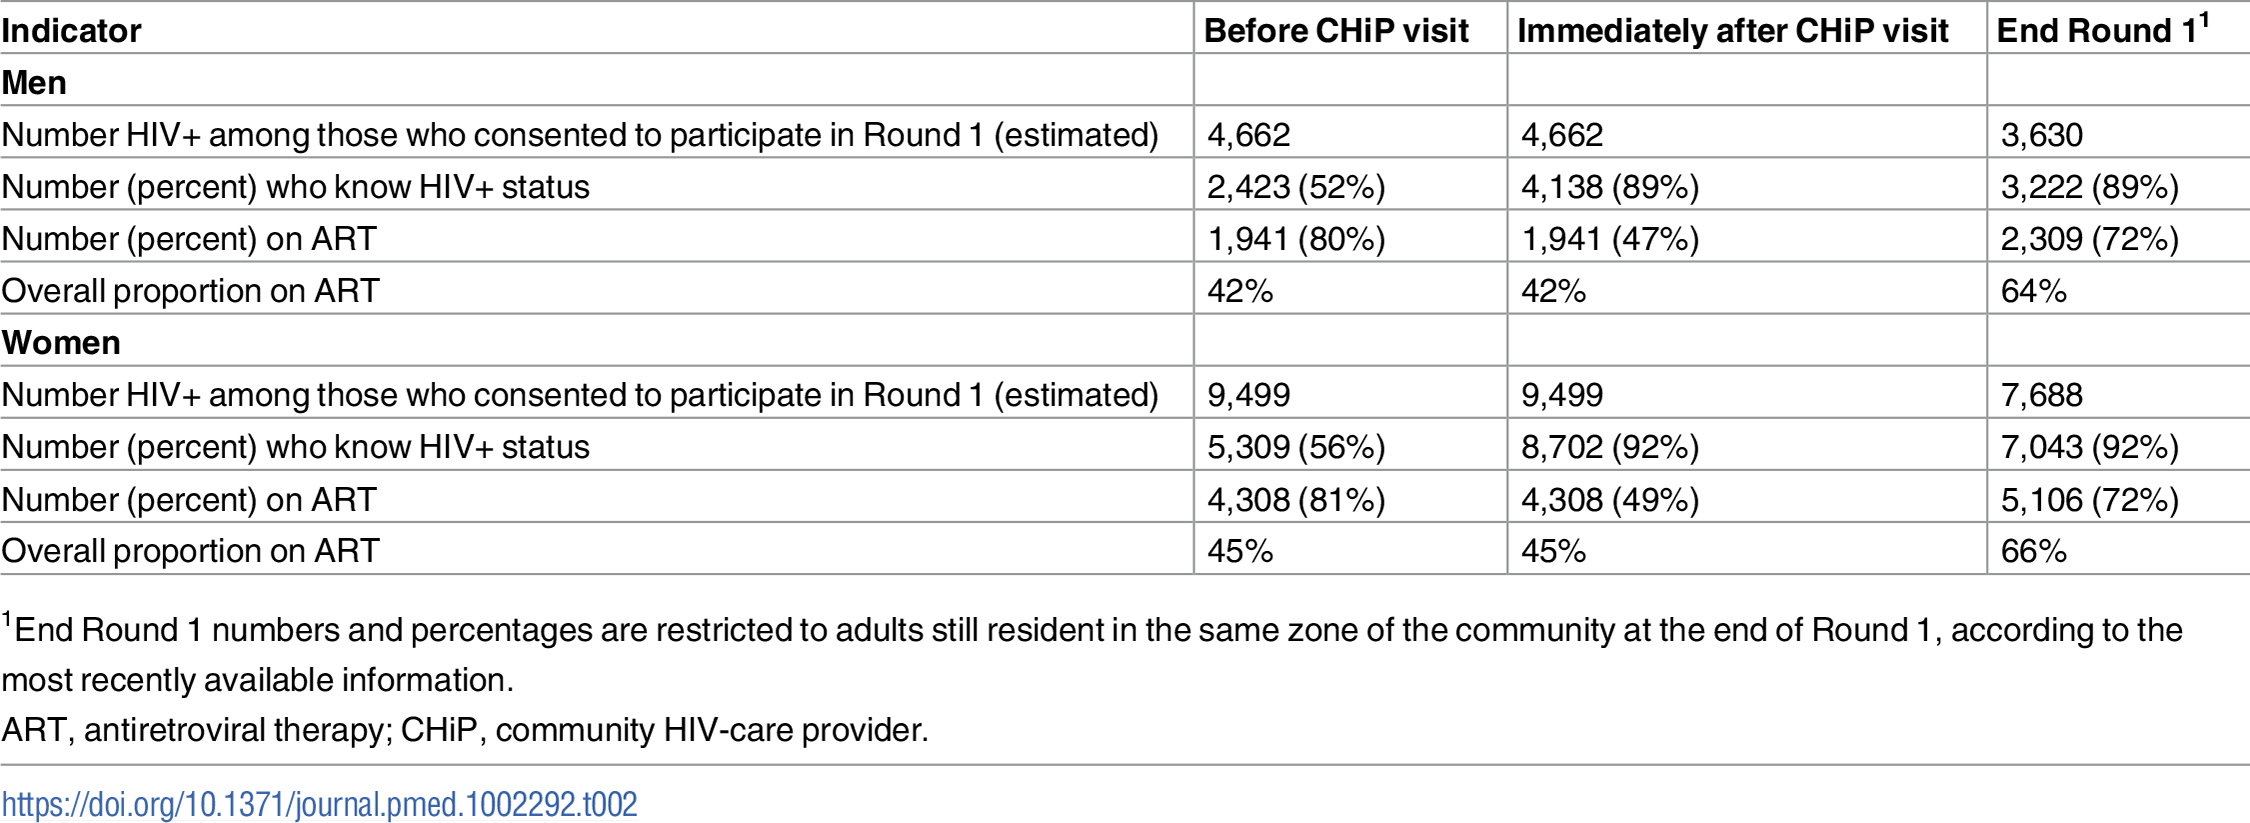 Estimated proportions of HIV+ individuals who knew their status and who were on ART before the CHiP visit, immediately after the CHiP visit, and at the end of Round 1, in those consenting to the intervention.